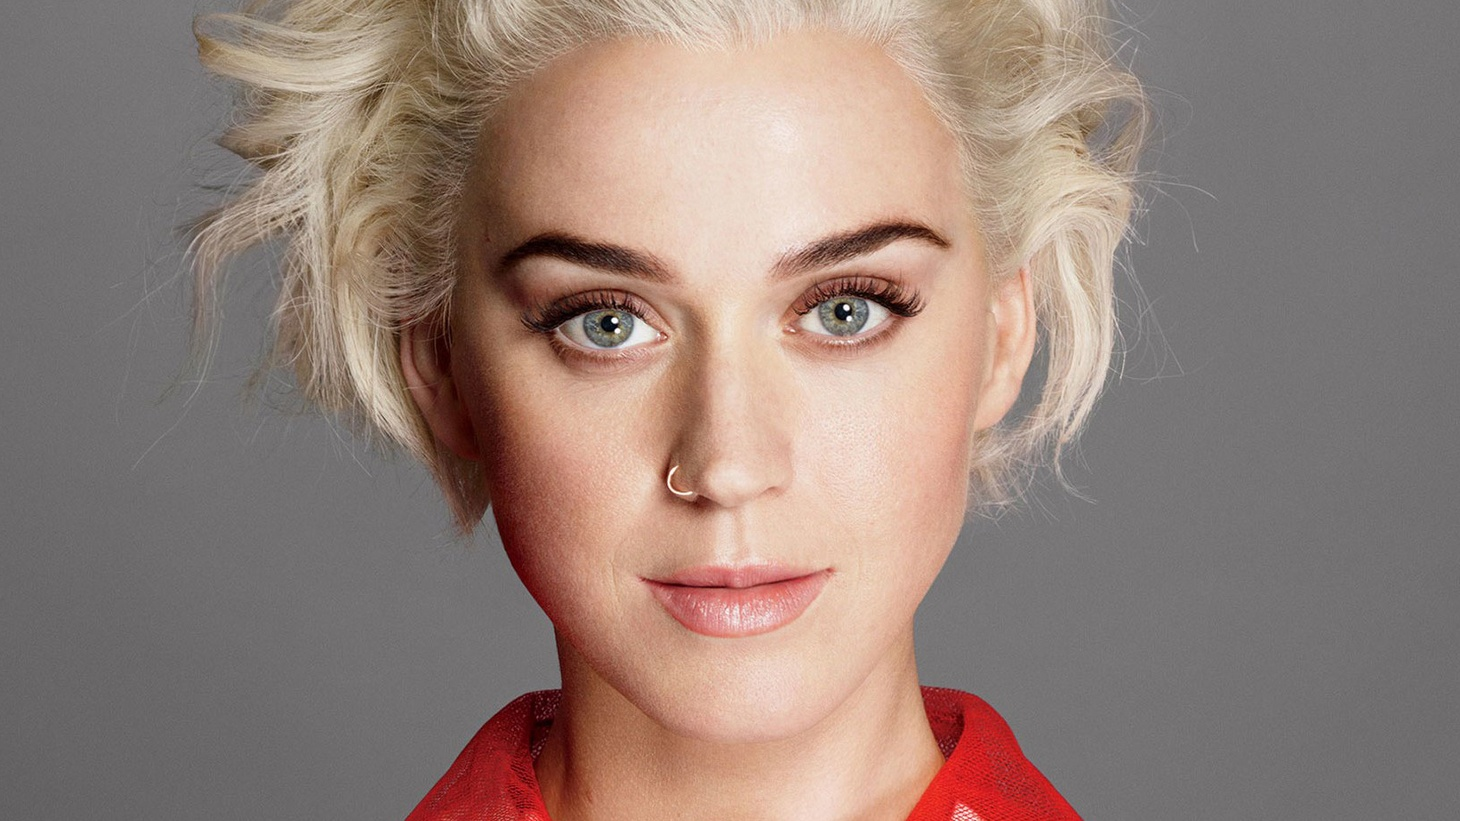 This weekend, one of Santa Barbara's most famous homegrown celebrities is returning to her roots. Katy Perry is best known as the only female artist in history with five singles in one album.